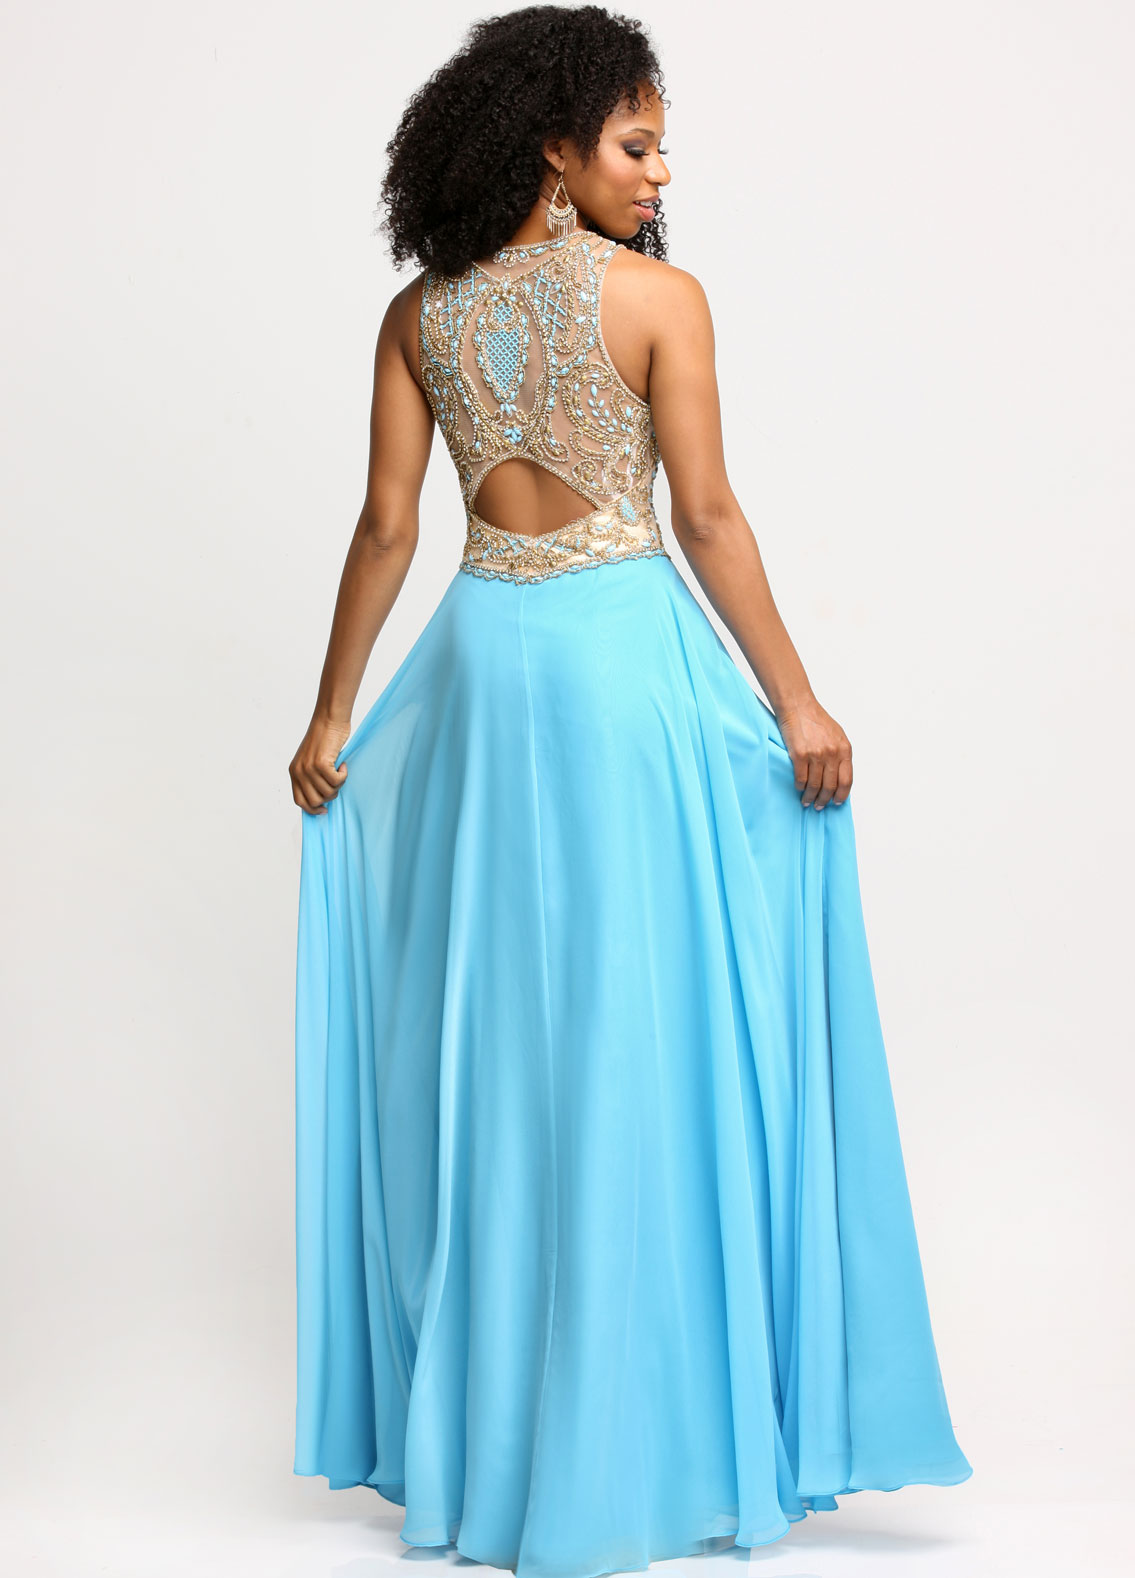 Image showing back view of style #71687